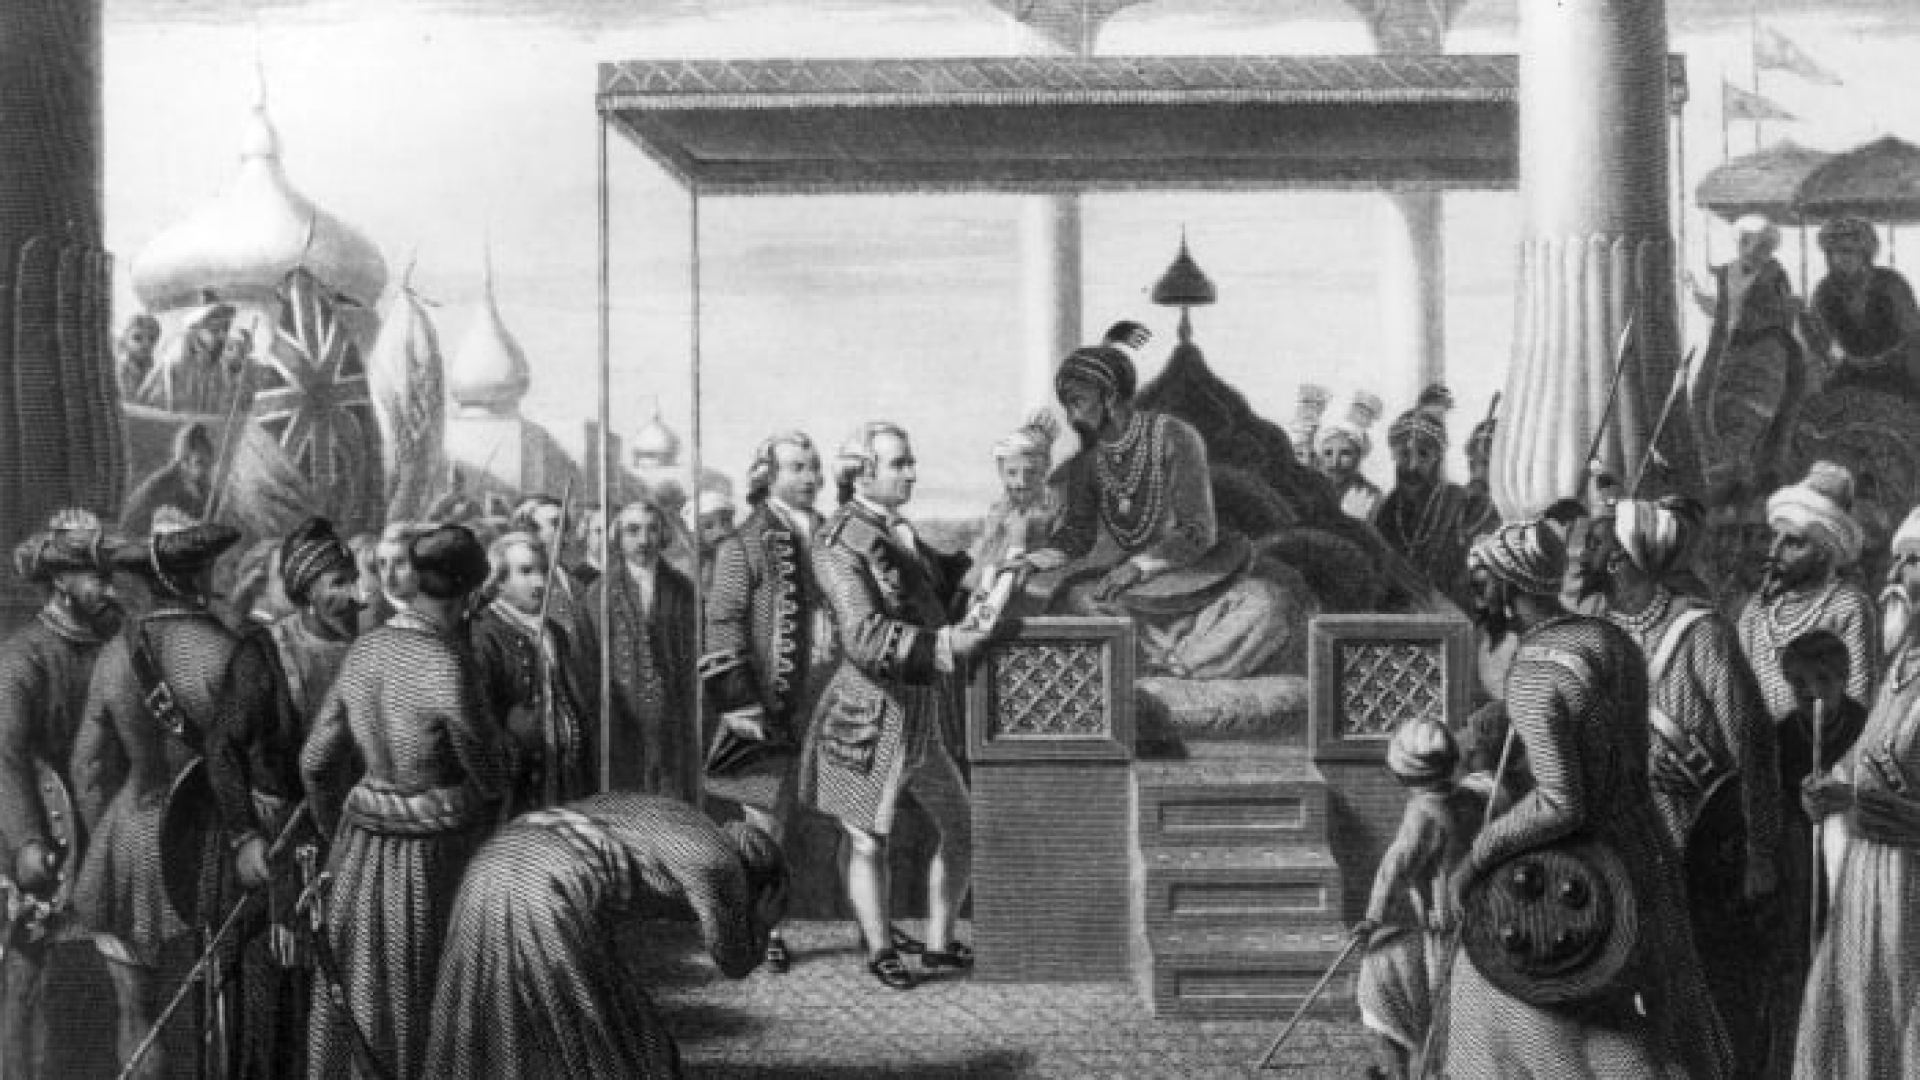 Robert Clive receives from Shah Alam, the Mughal Emperor of India, a decree conferring upon the East India Company the administration of the revenues of Bengal, Behar and Orissa.